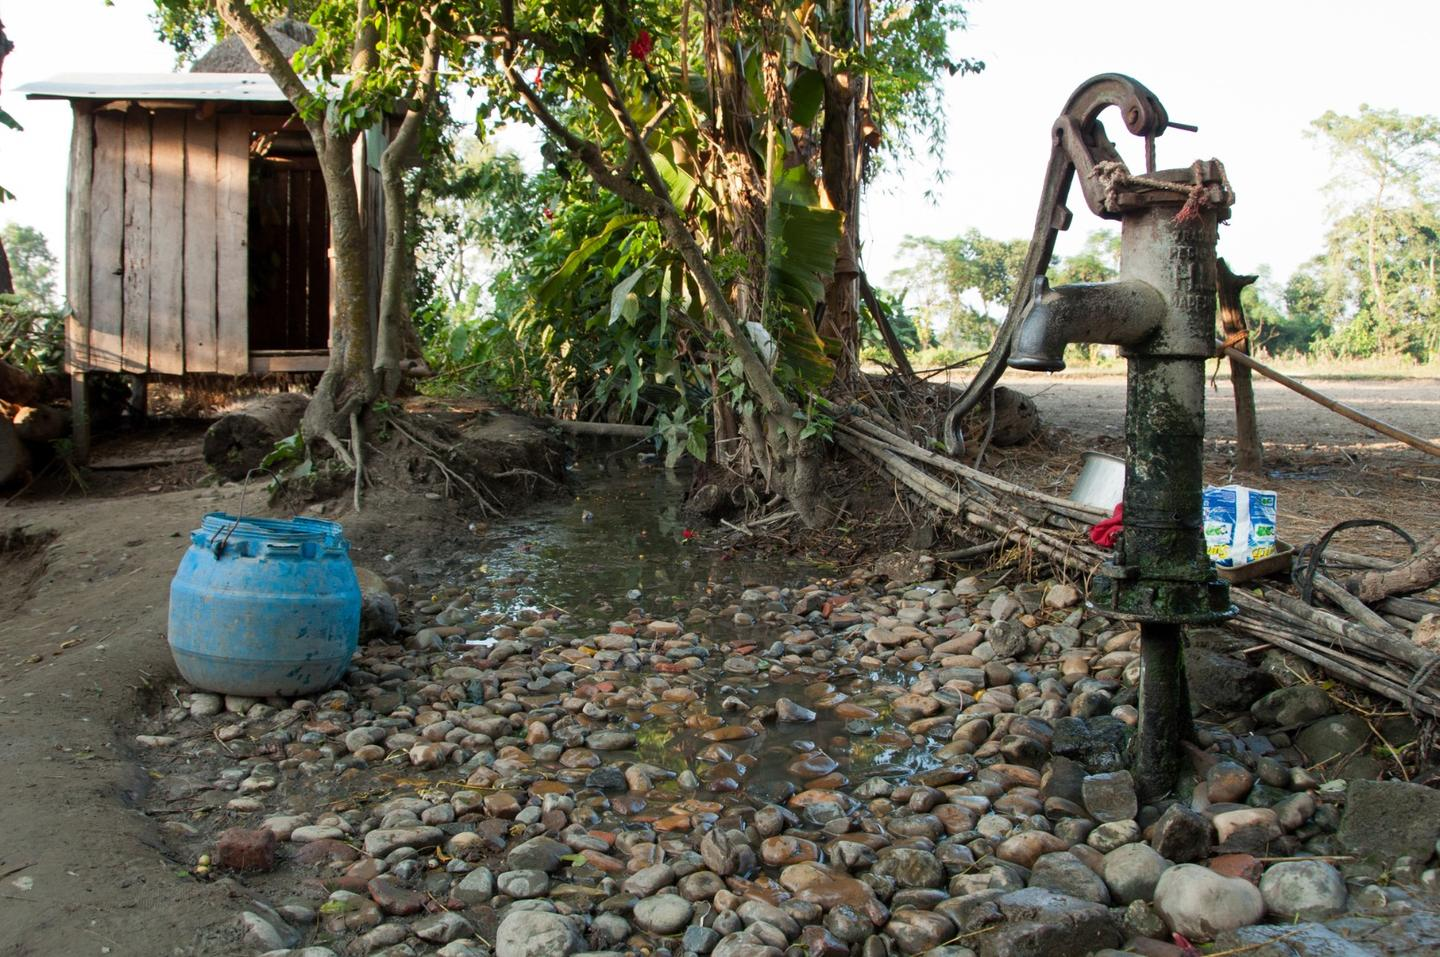 A new chlorine dispenser can help protect against childhood diarrhea in developing countries